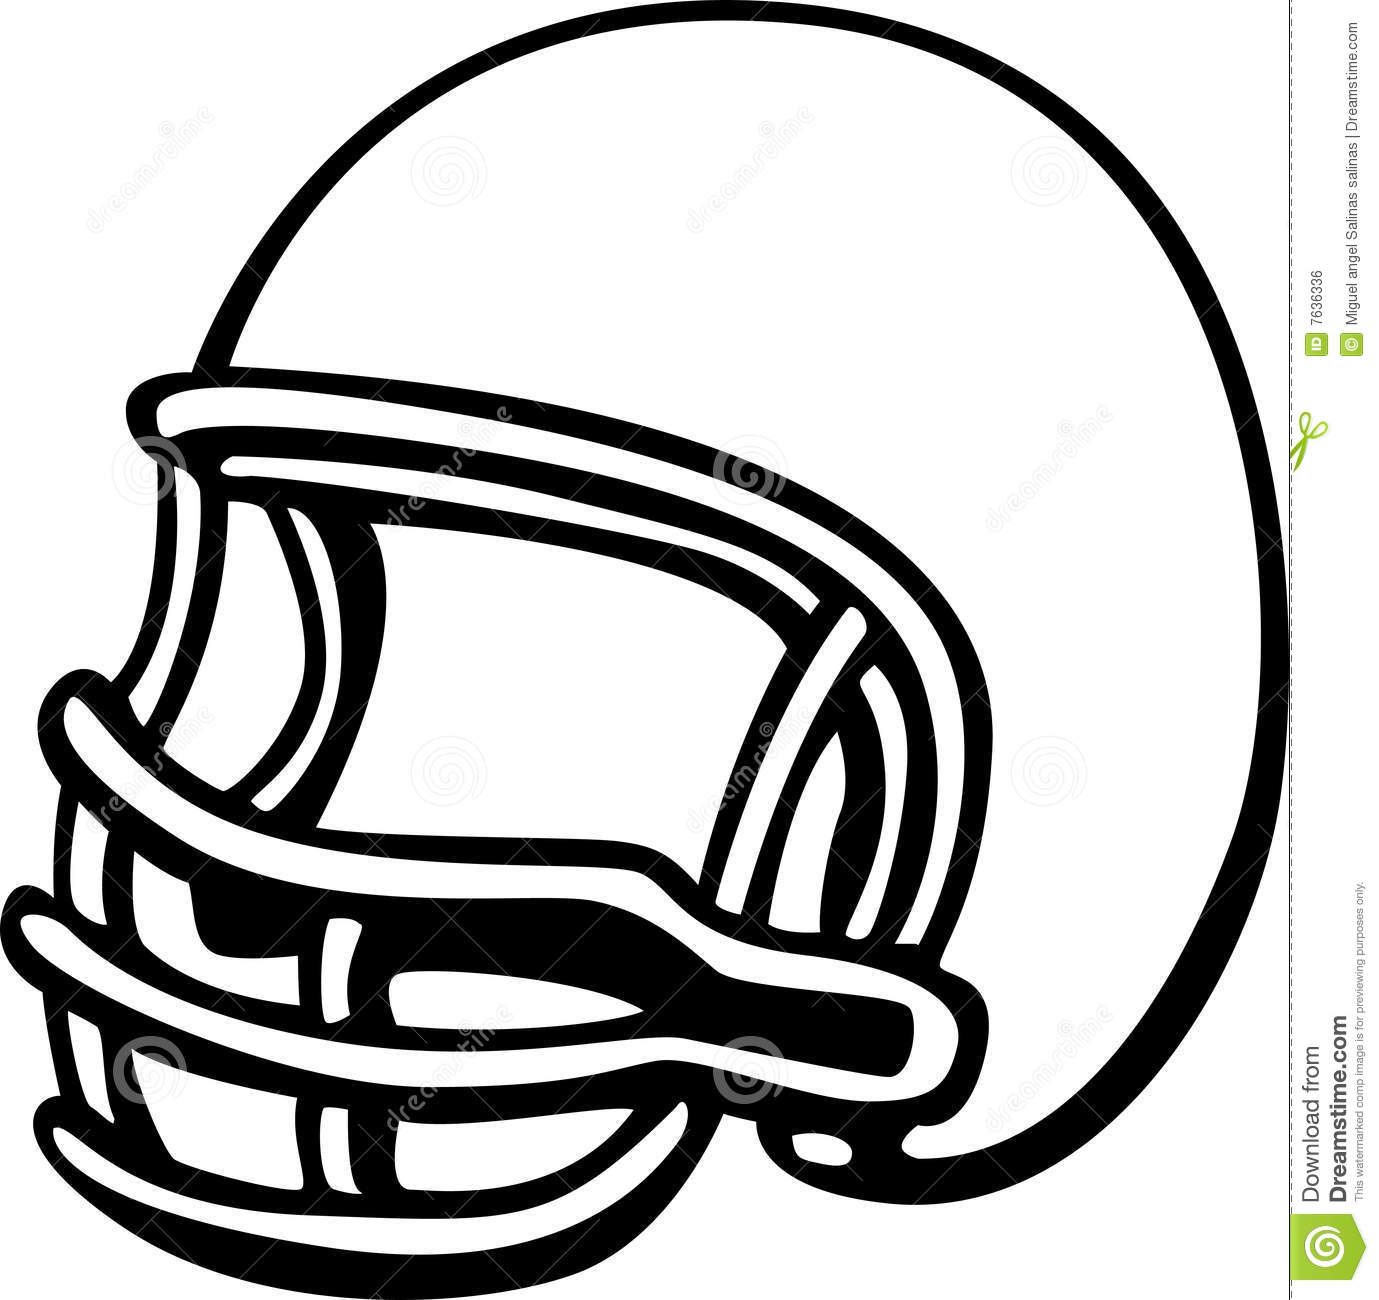 American Football Clipart Black And White Football Helmet Vector